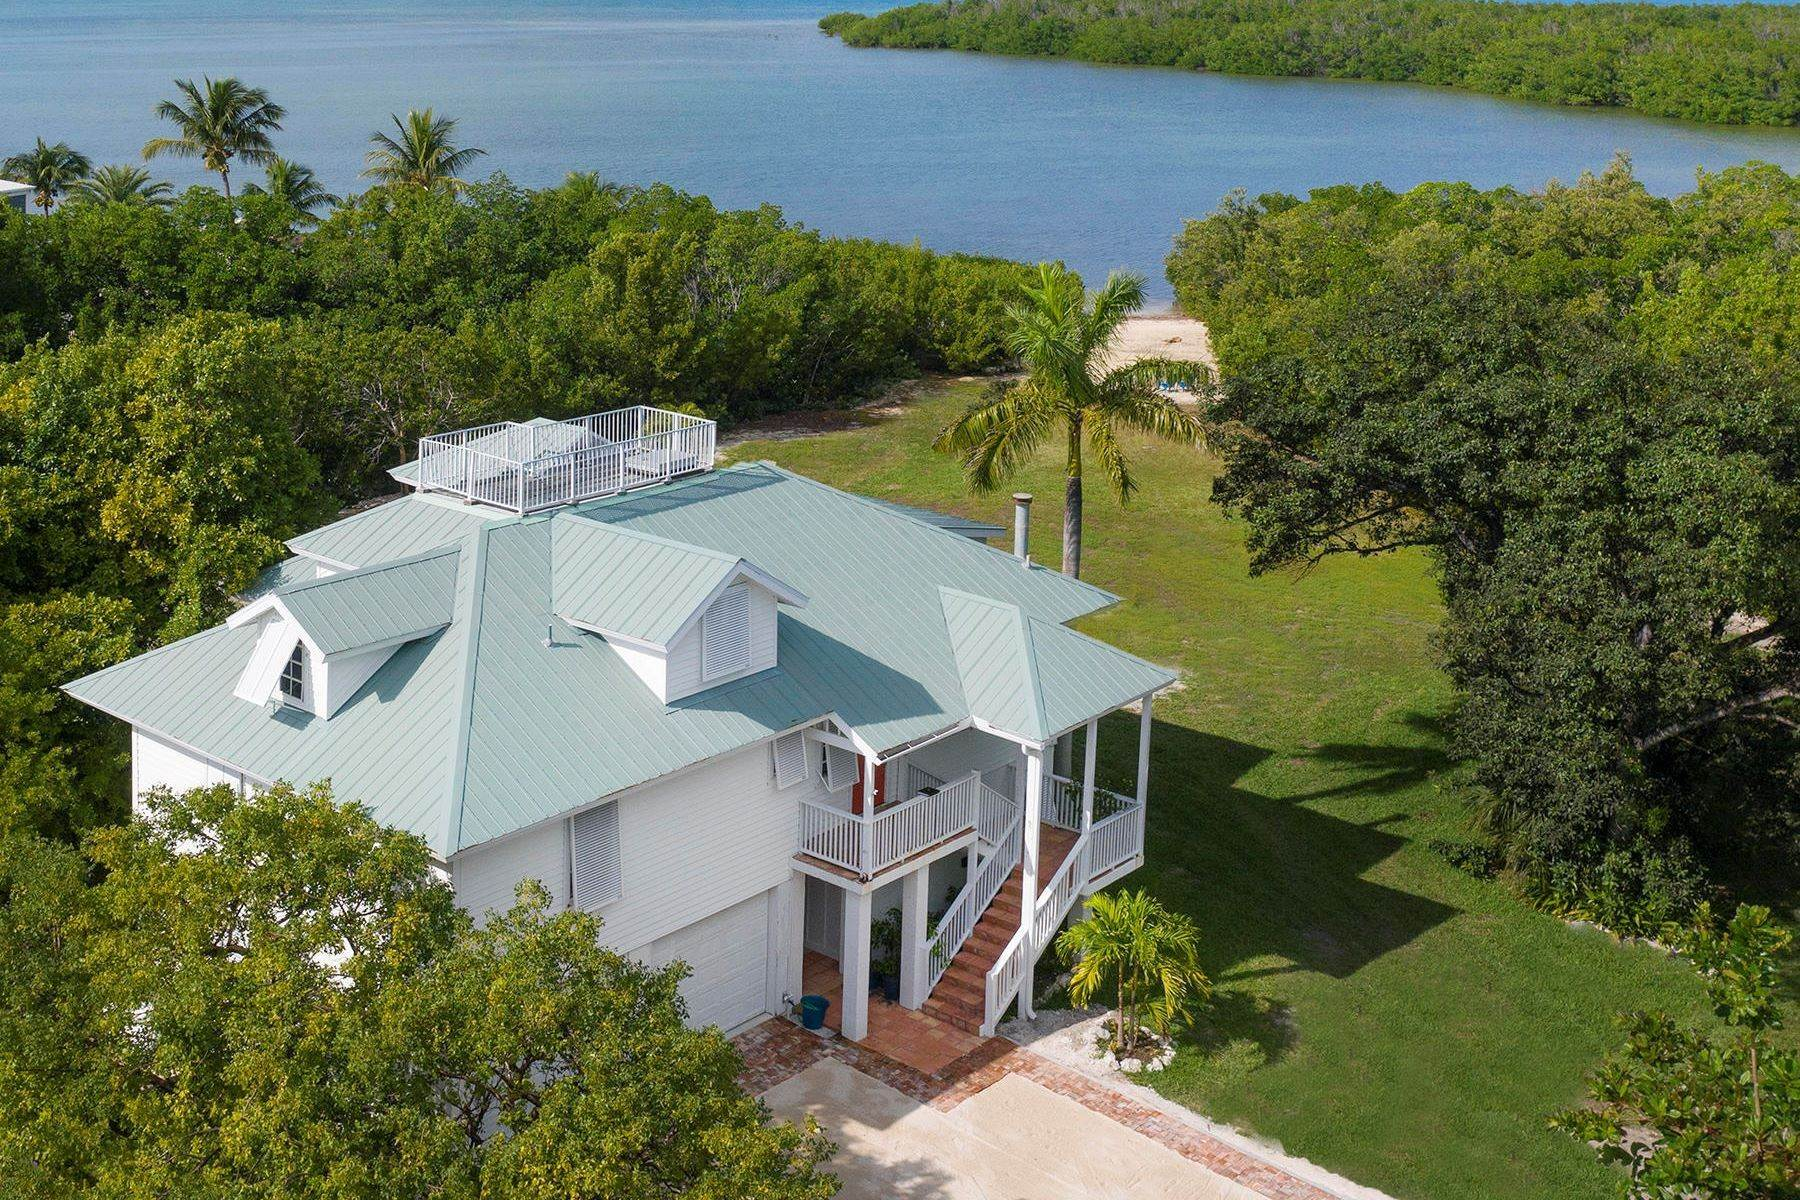 Single Family Homes for Sale at 179 Venetian Way, Islamorada, FL 179 Venetian Way Islamorada, Florida 33036 United States